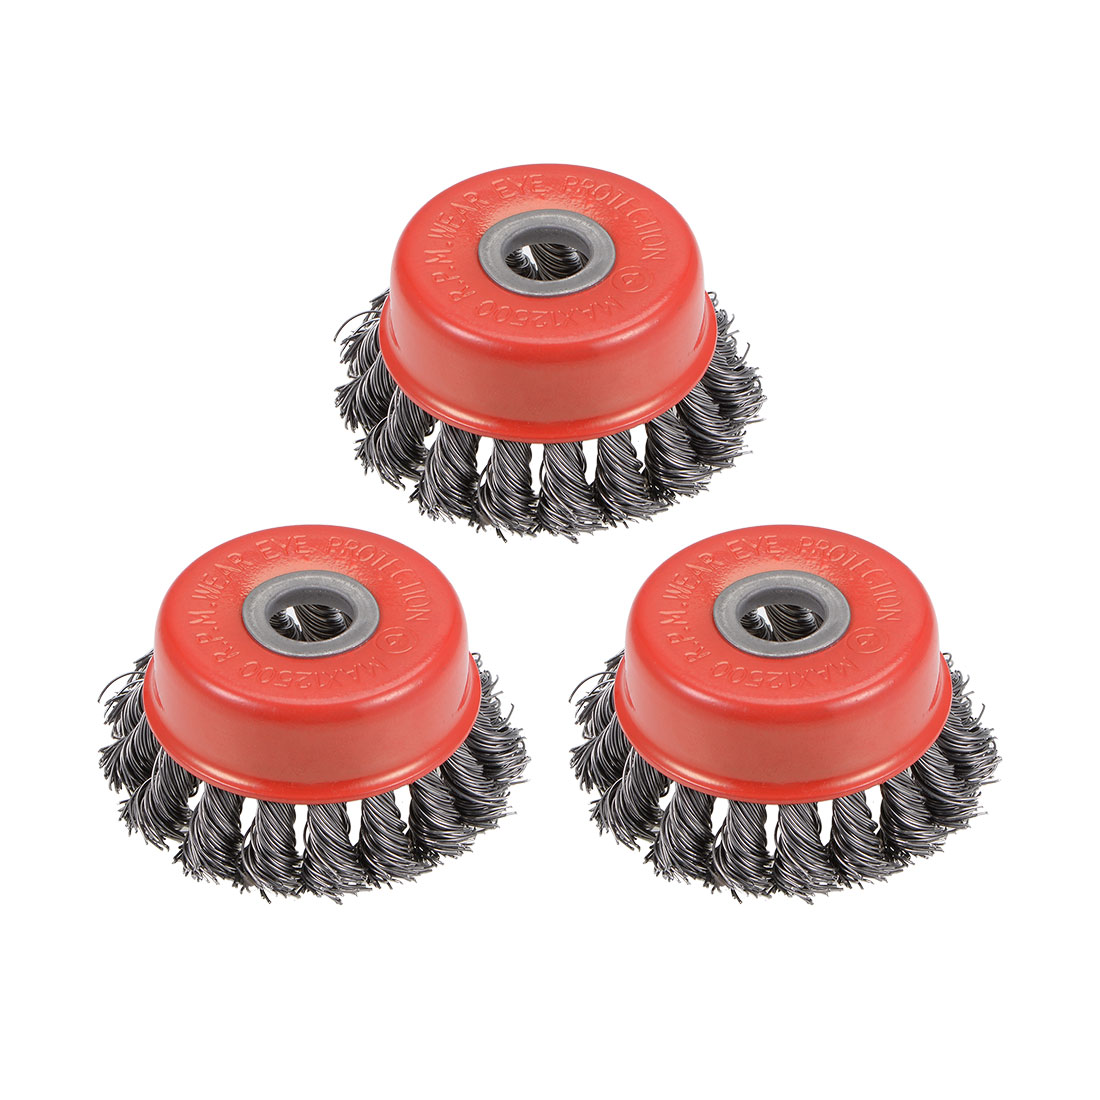 3-Inch Wire Cup Brush Twist Knotted Crimped Steel with 15mm Arbor Hole 3 Pcs